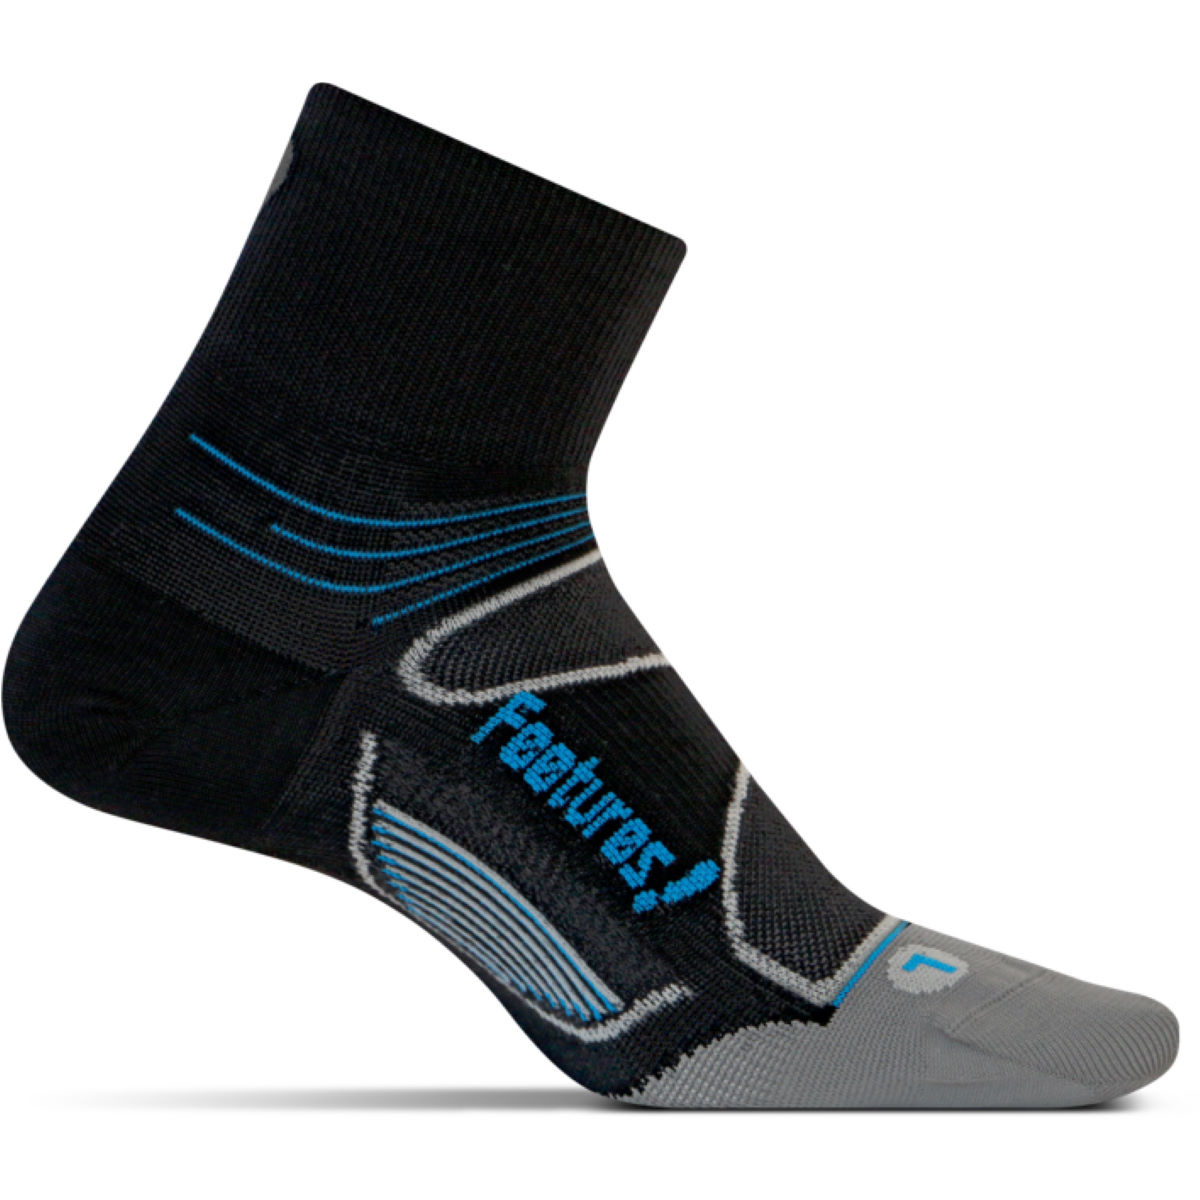 Feetures! Elite Ultralight Plantar Fasciitis QTR - Calcetines